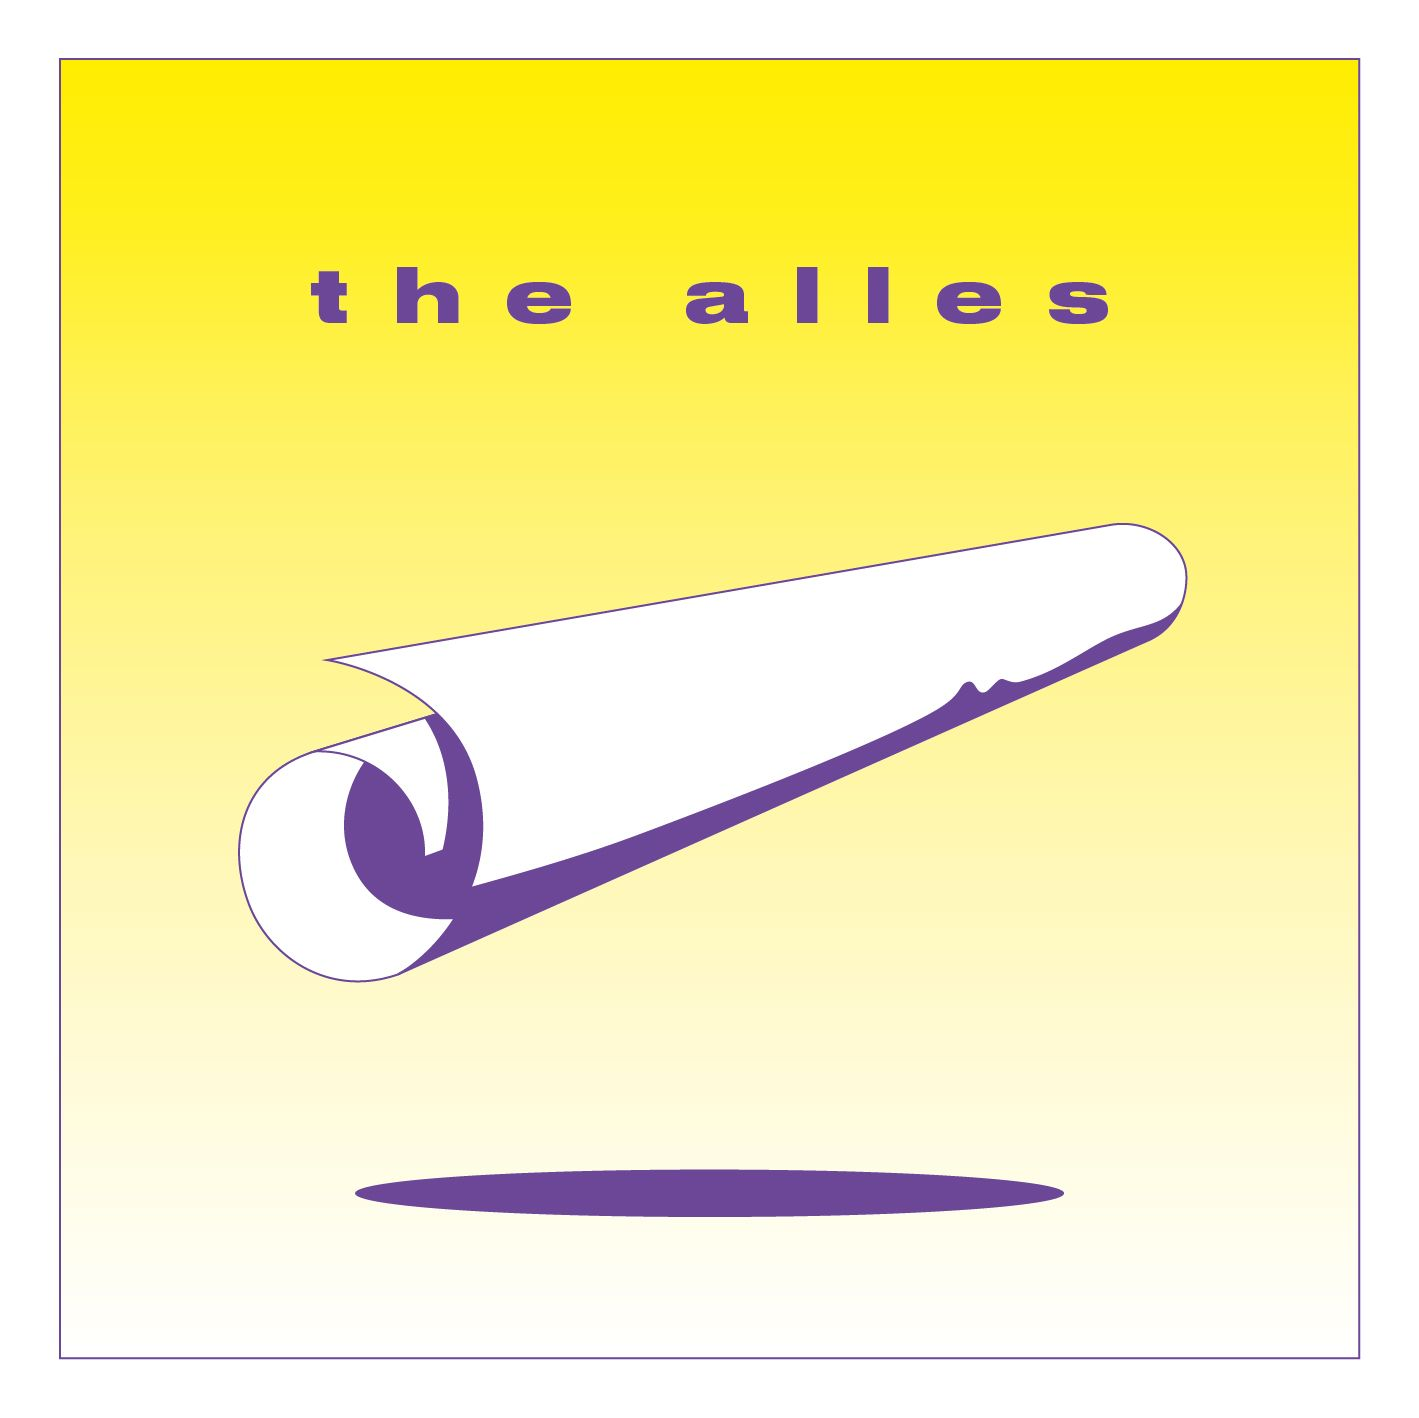 the alles